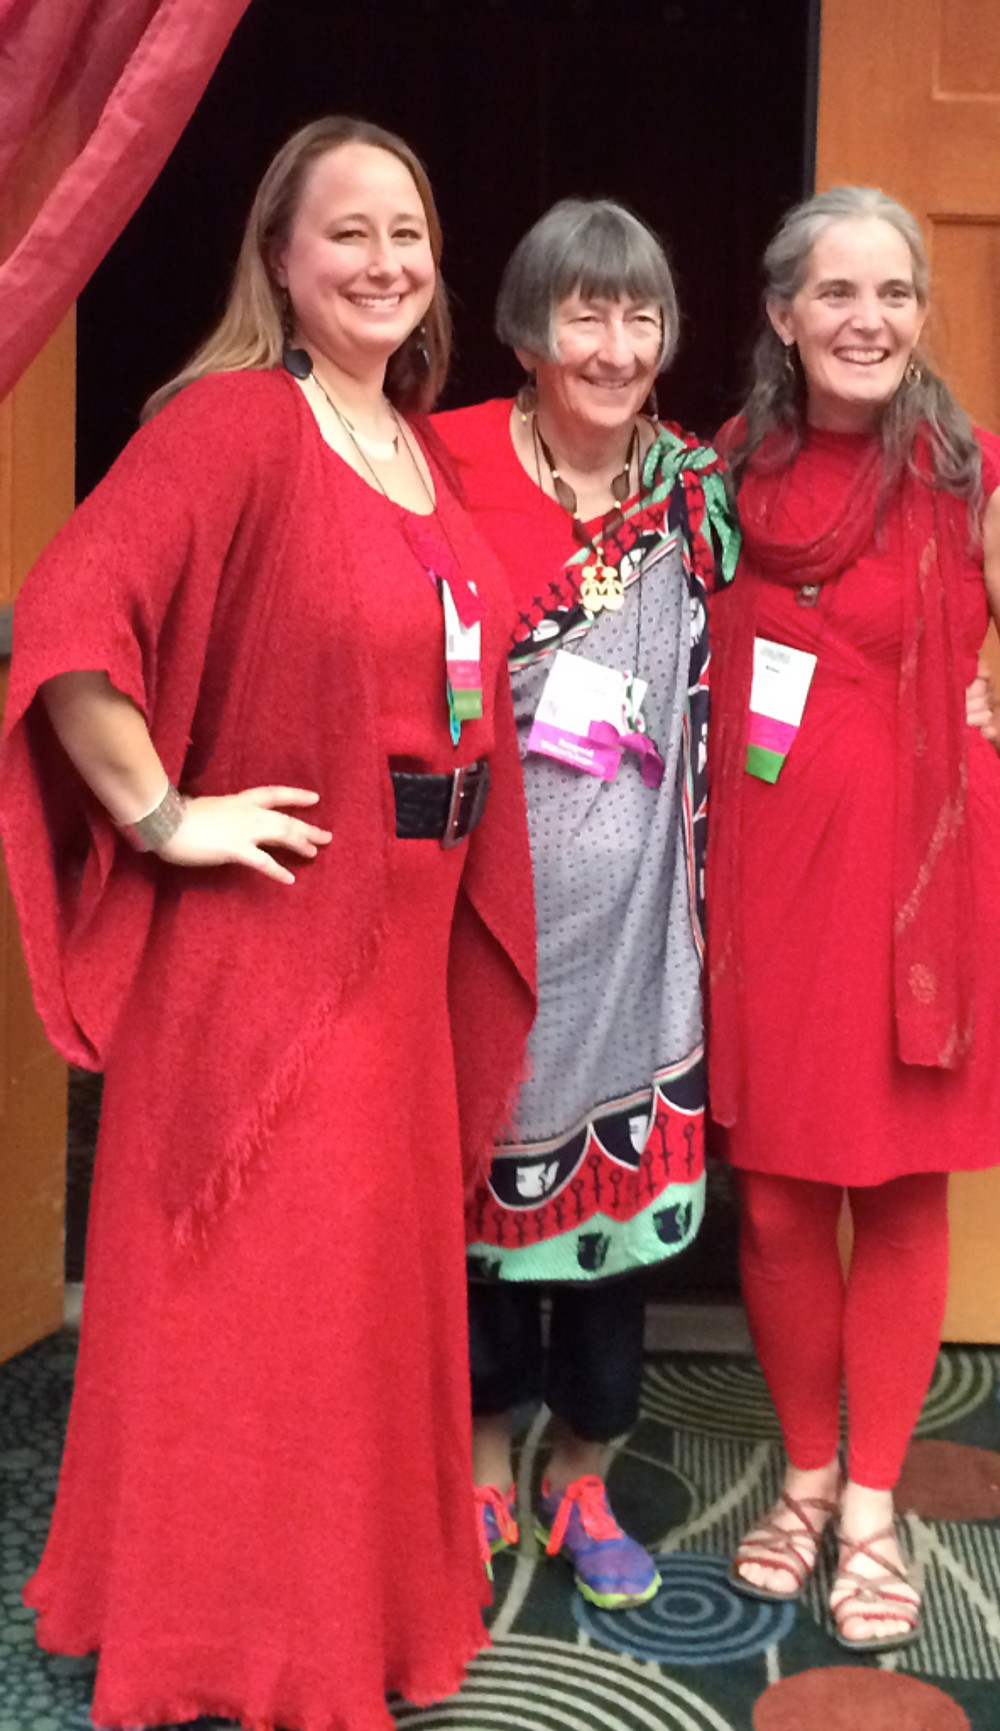 Dr. Isadora, Lydia Ruyle, and ALisa Starkweather in the Red Tent at the Parliament of World Religions